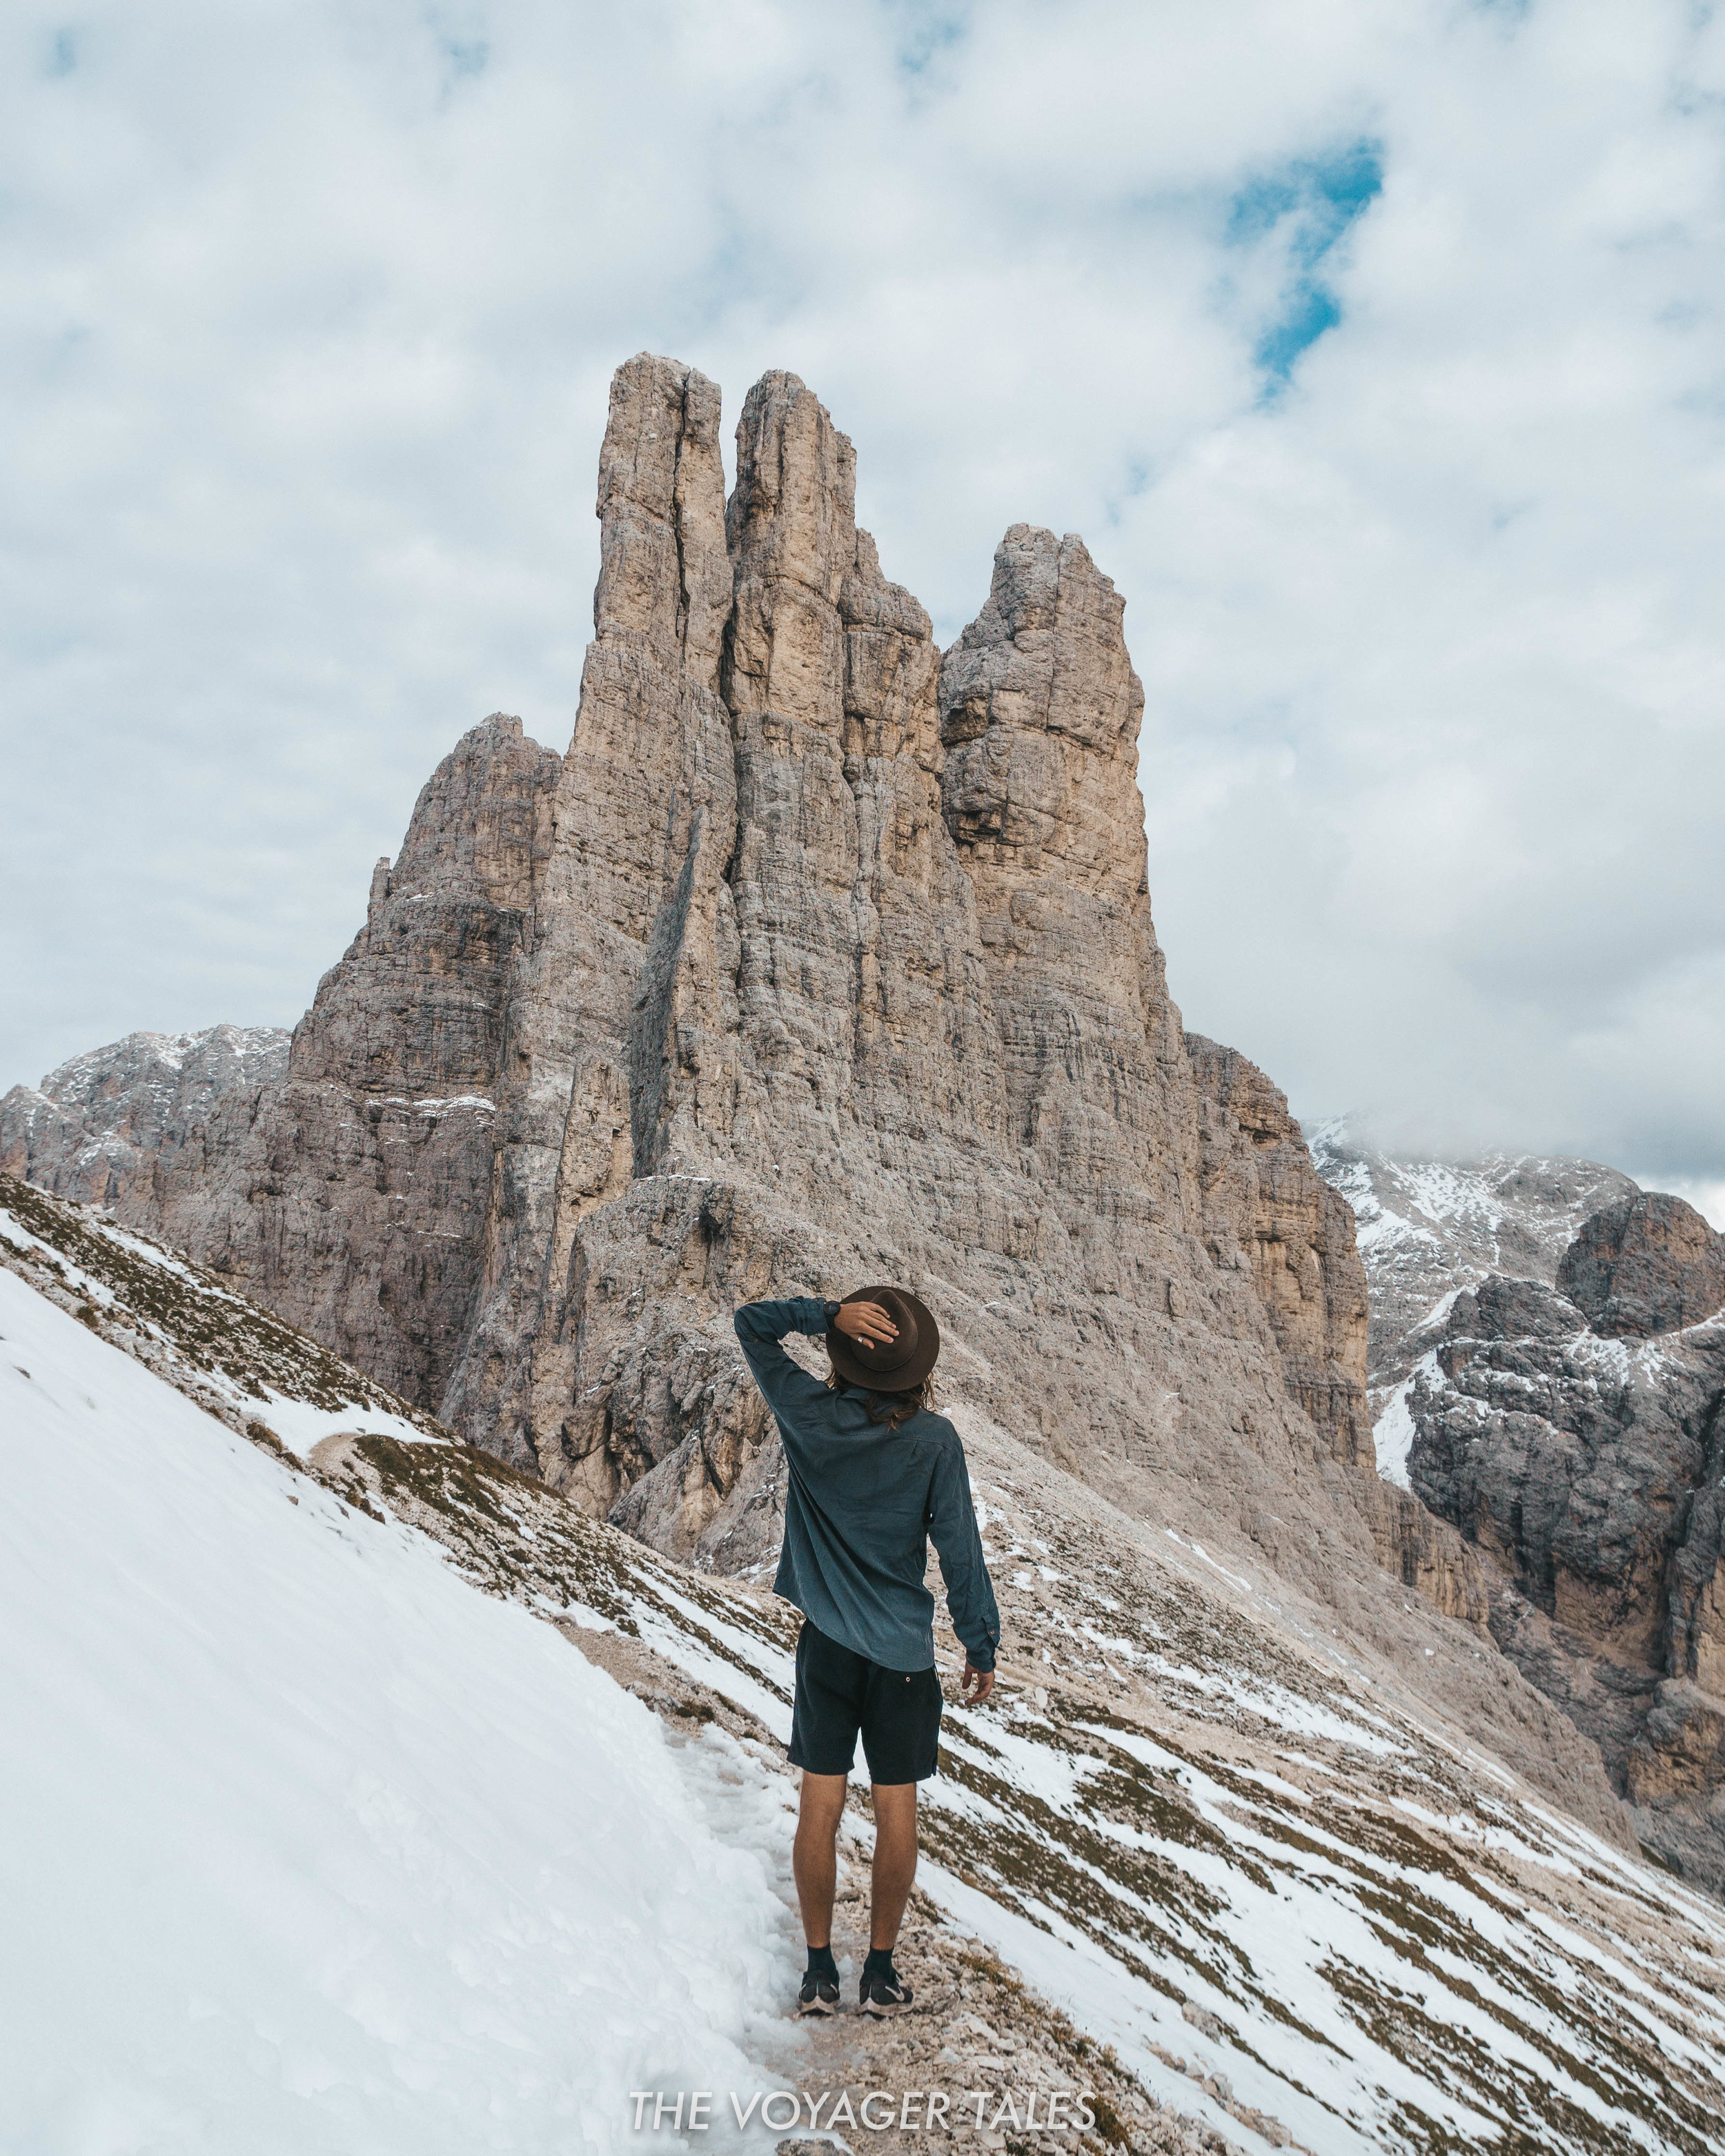 Admiring the view of the Vajolet Towers from Passo Santner